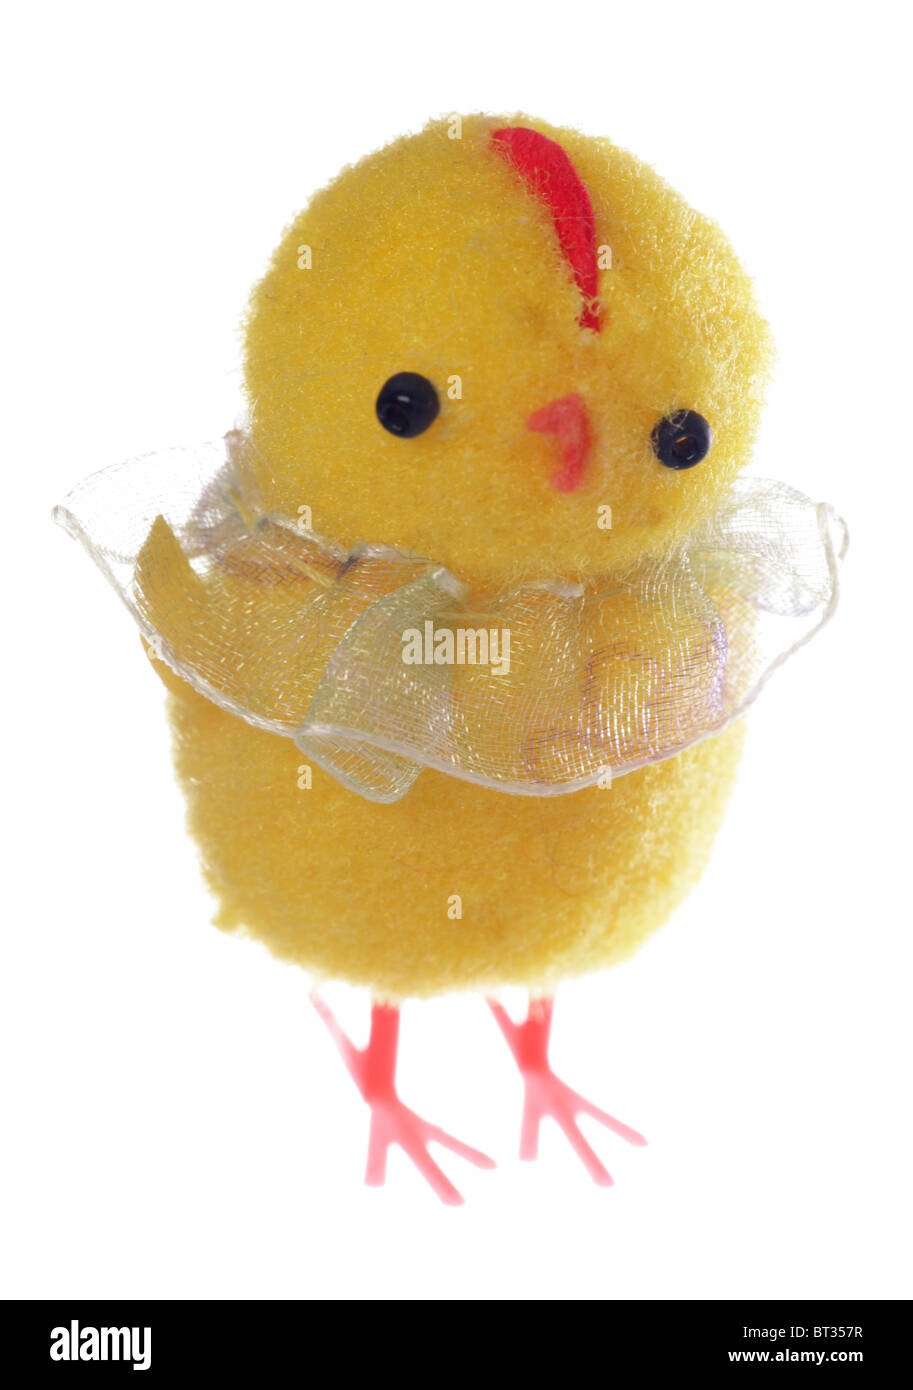 Easter Chick toy studio cutout - Stock Image